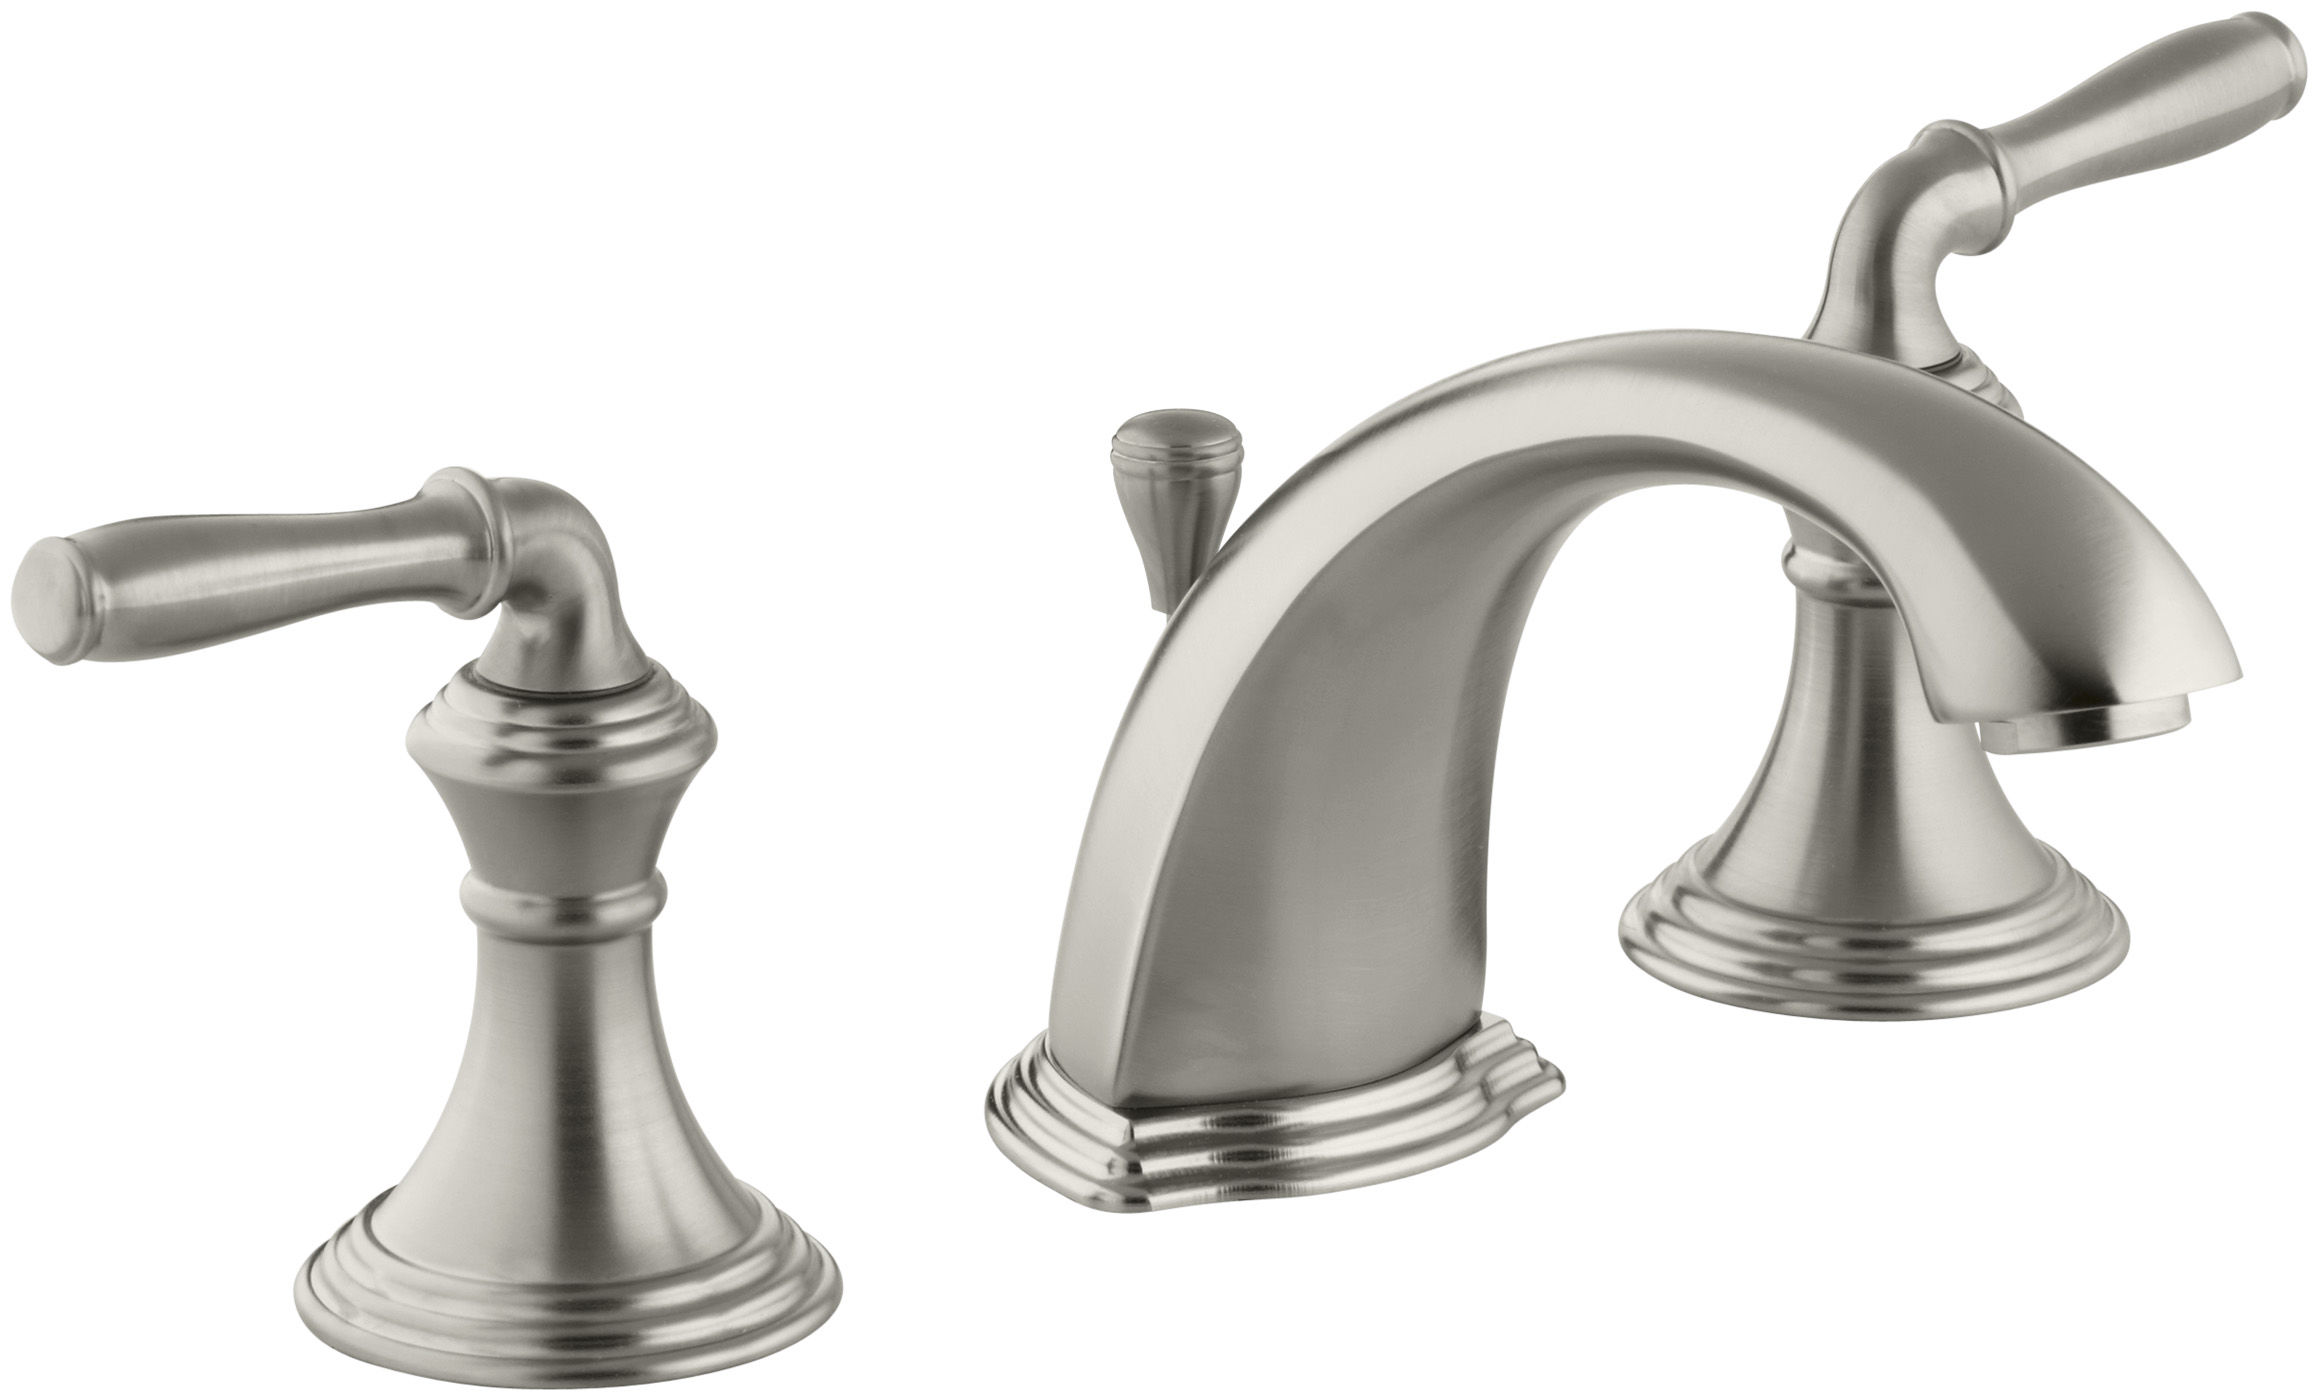 sink gooseneck handles spout faucets faucet k kohler cross purist widespread low and with bathroom pin